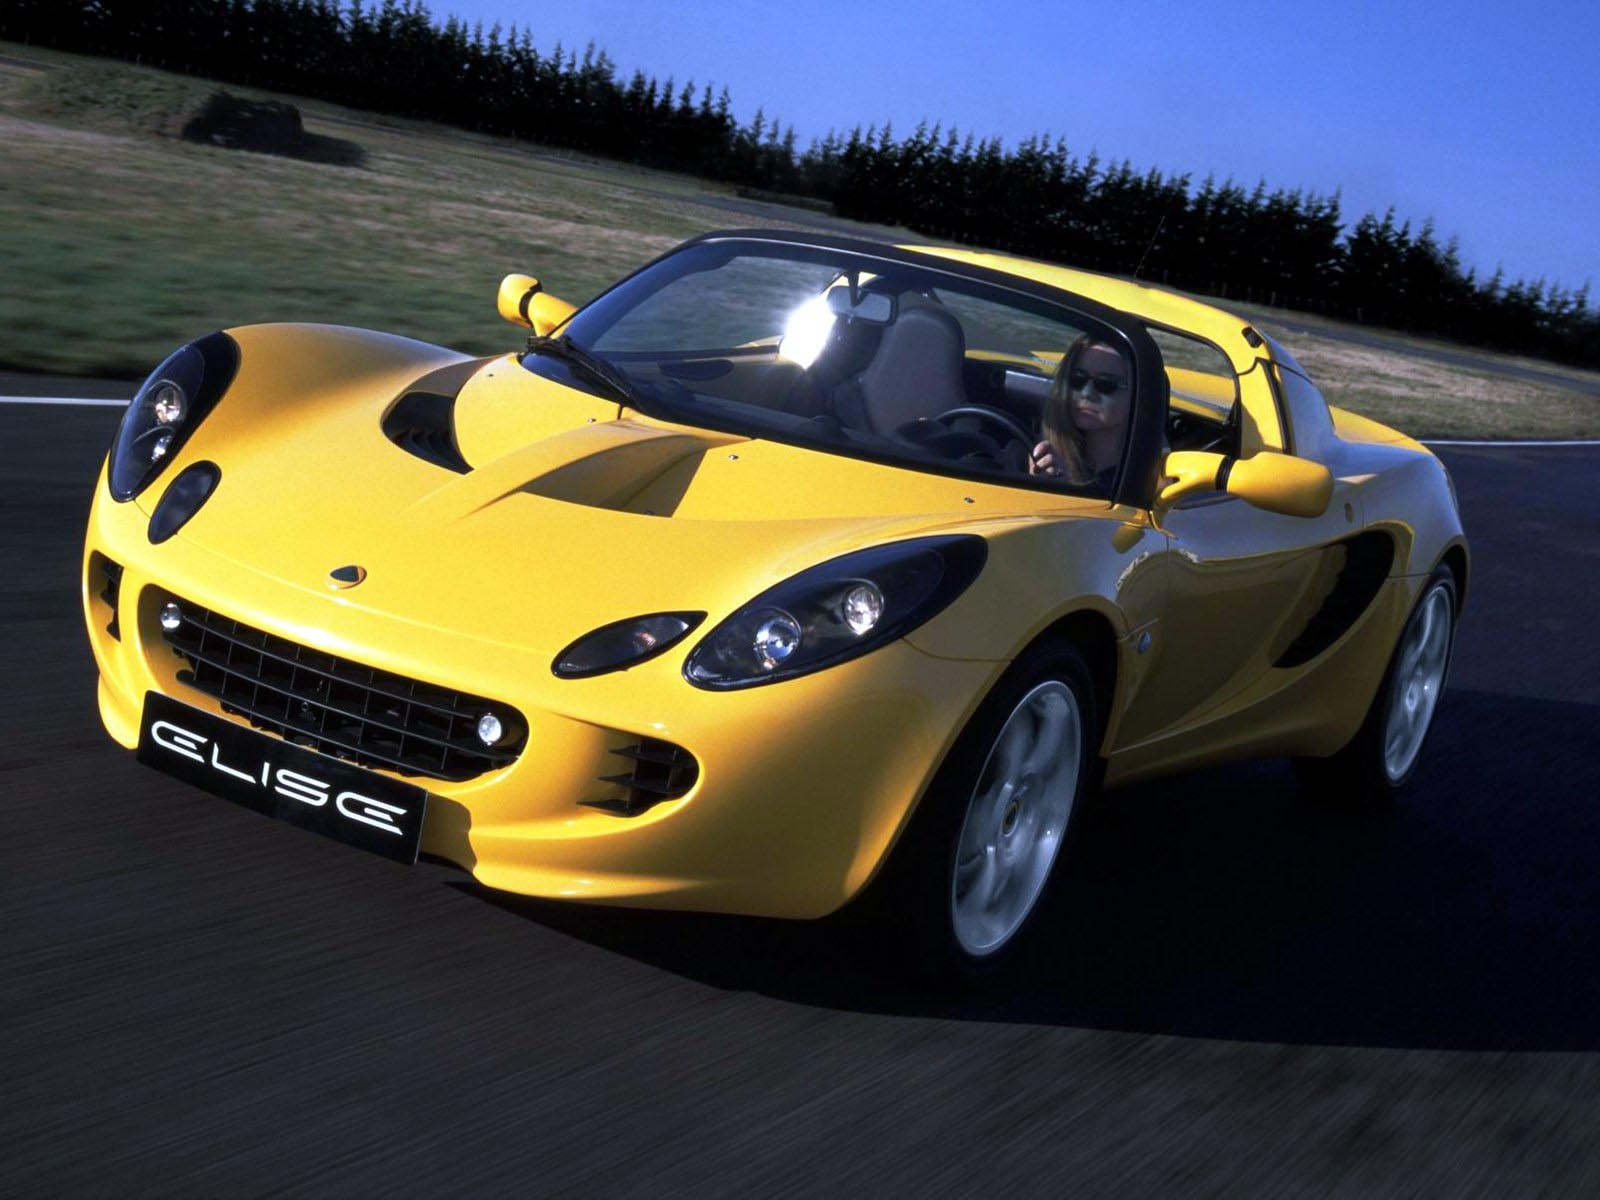 2005 lotus elise pictures history value research news. Black Bedroom Furniture Sets. Home Design Ideas